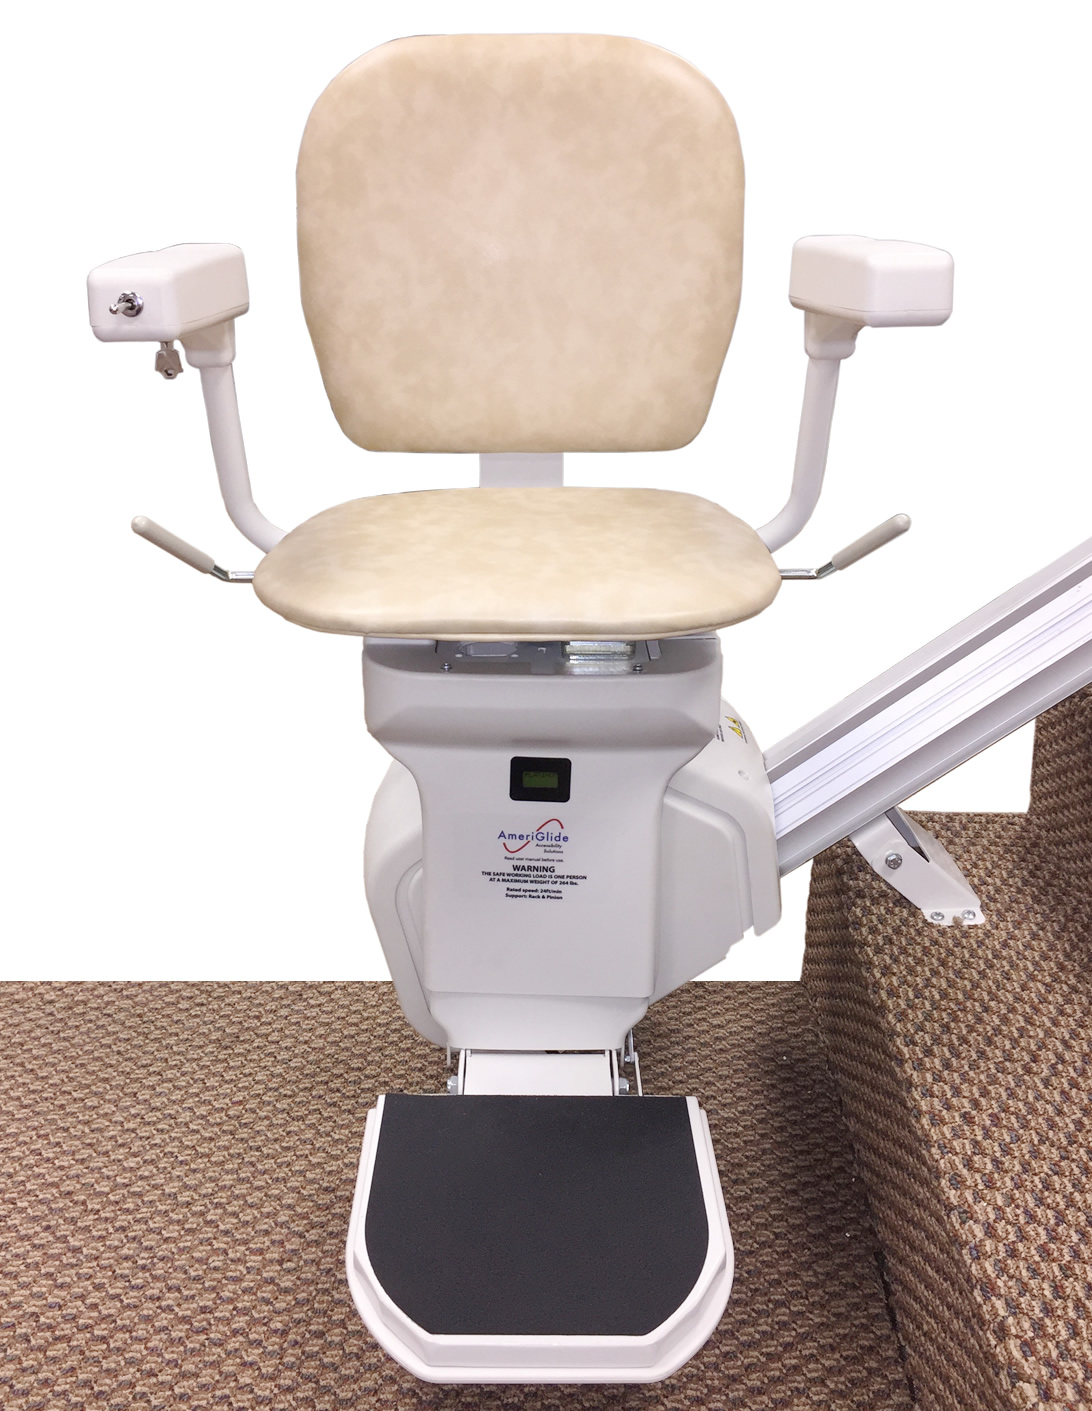 Chair Lift For Stairs Cost Ameriglide Stair Lifts Tulsa Broken Arrow Claremore